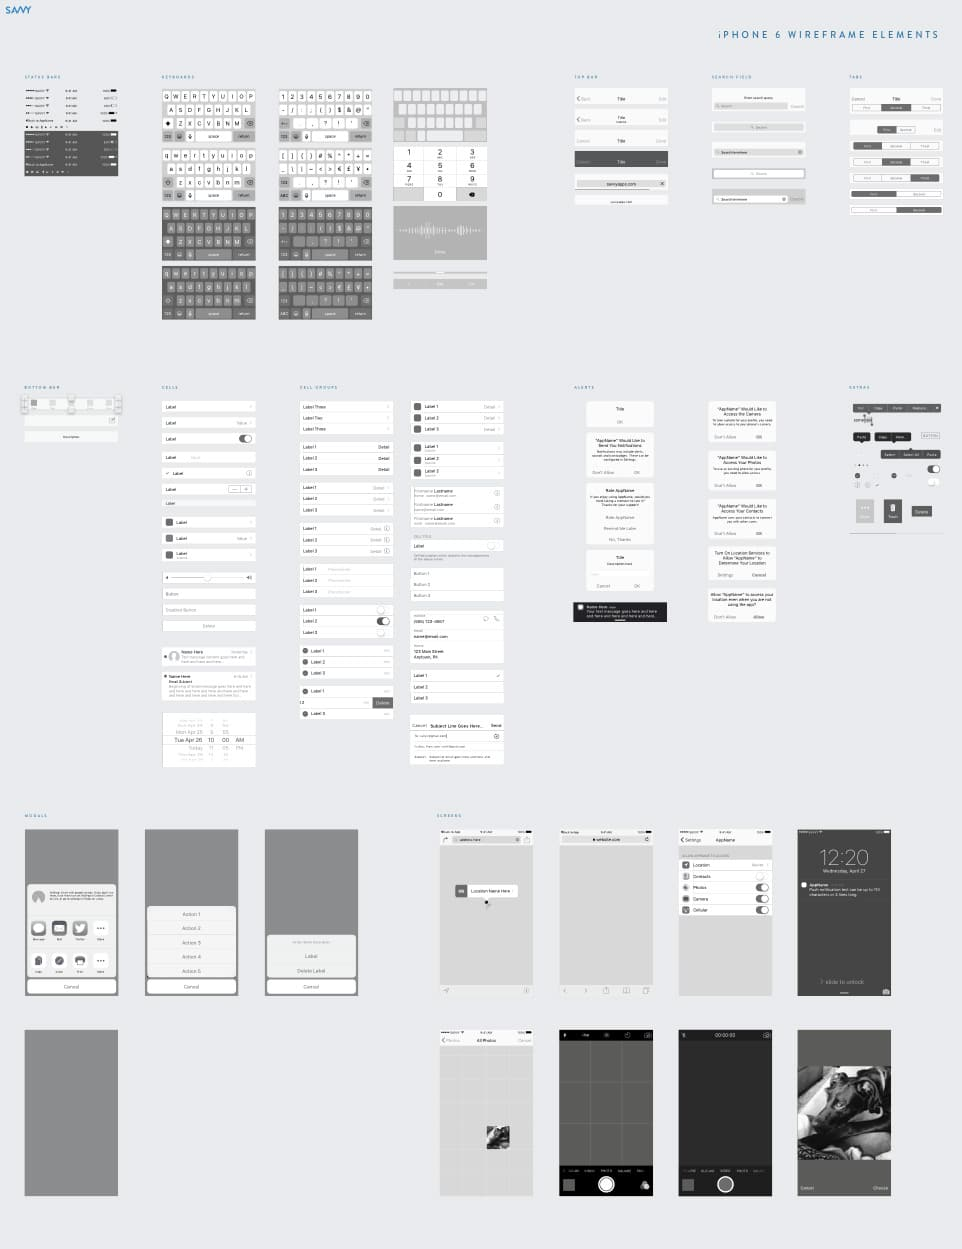 Savvy - iOS Wireframe Kit for Sketch